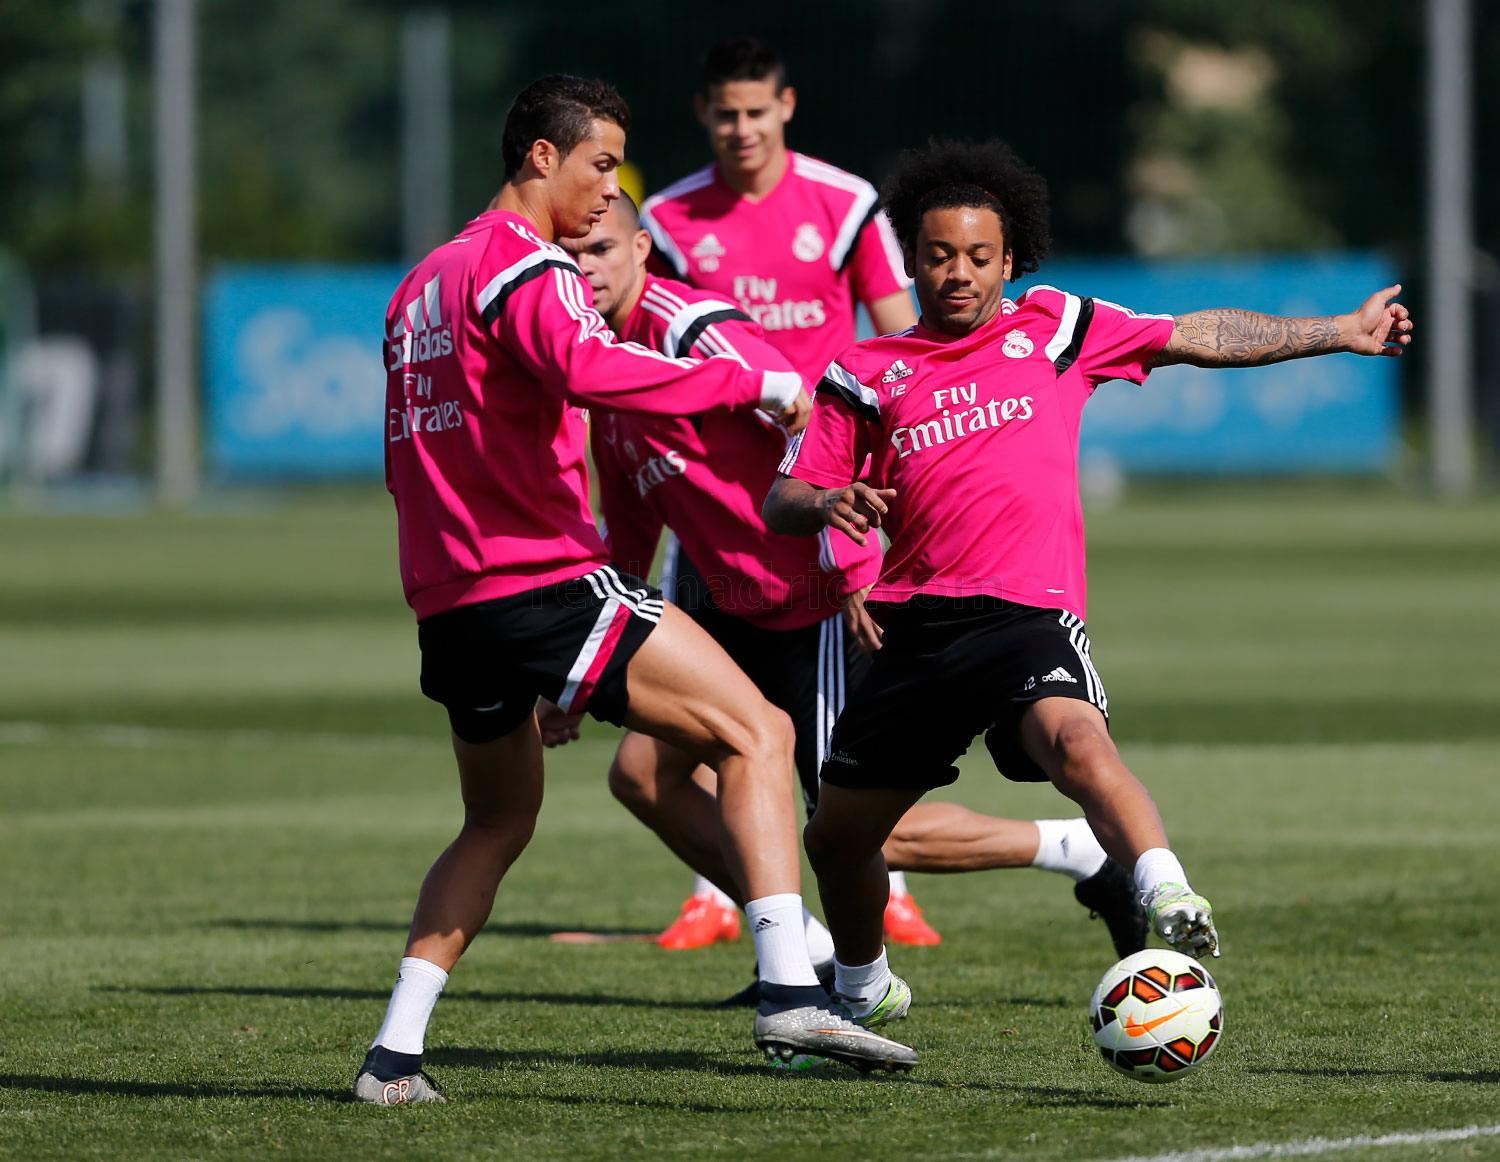 Real Madrid - Entrenamiento del Real Madrid - 28-04-2015